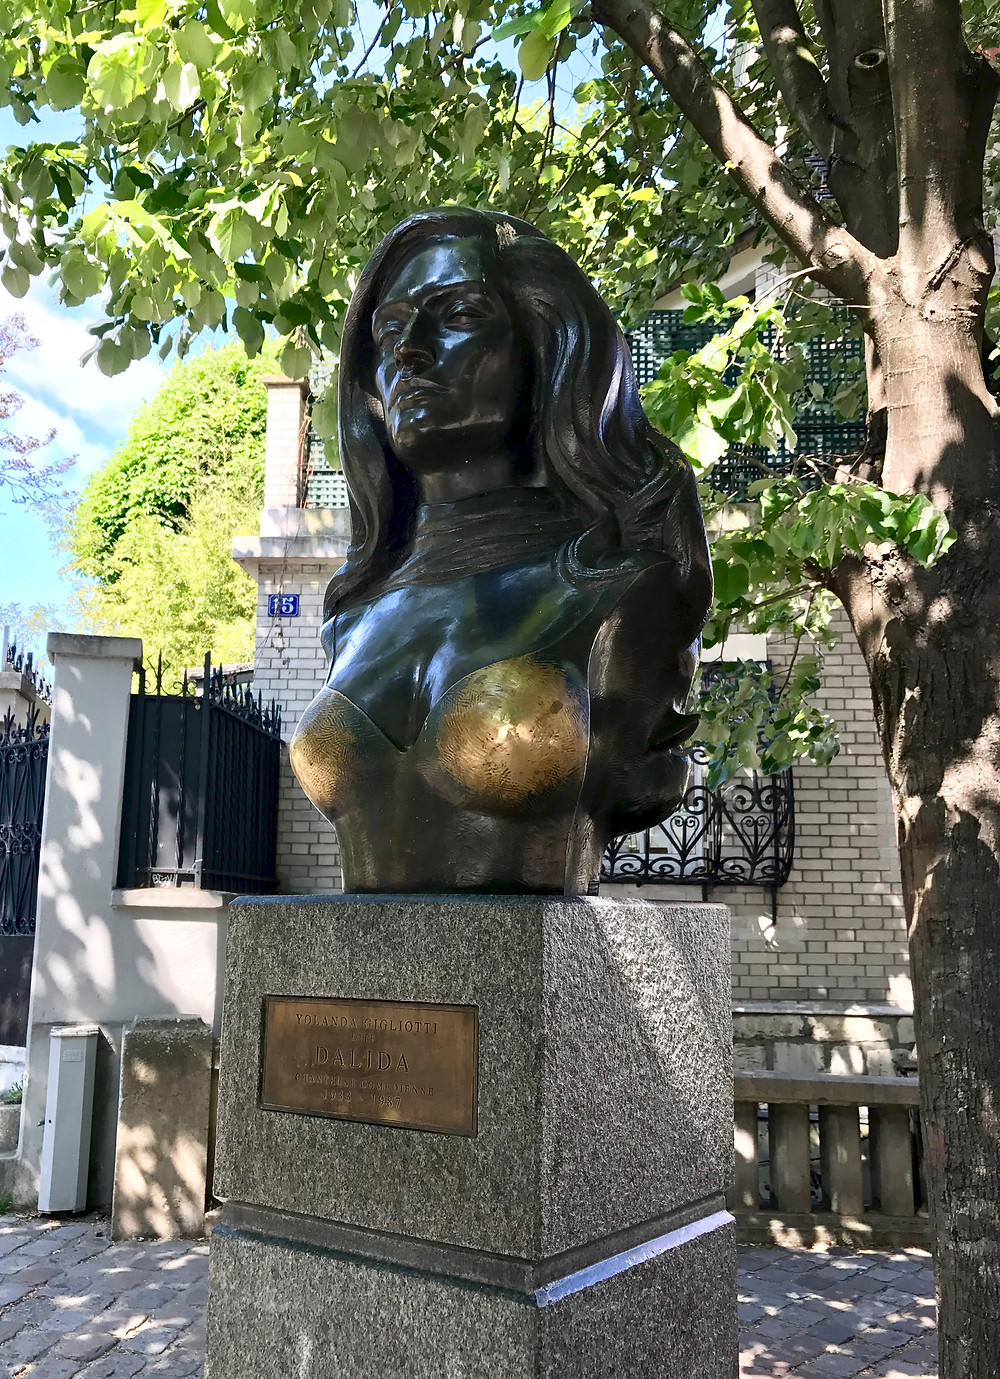 statue of Dalida on Place Dalida in Montmartre